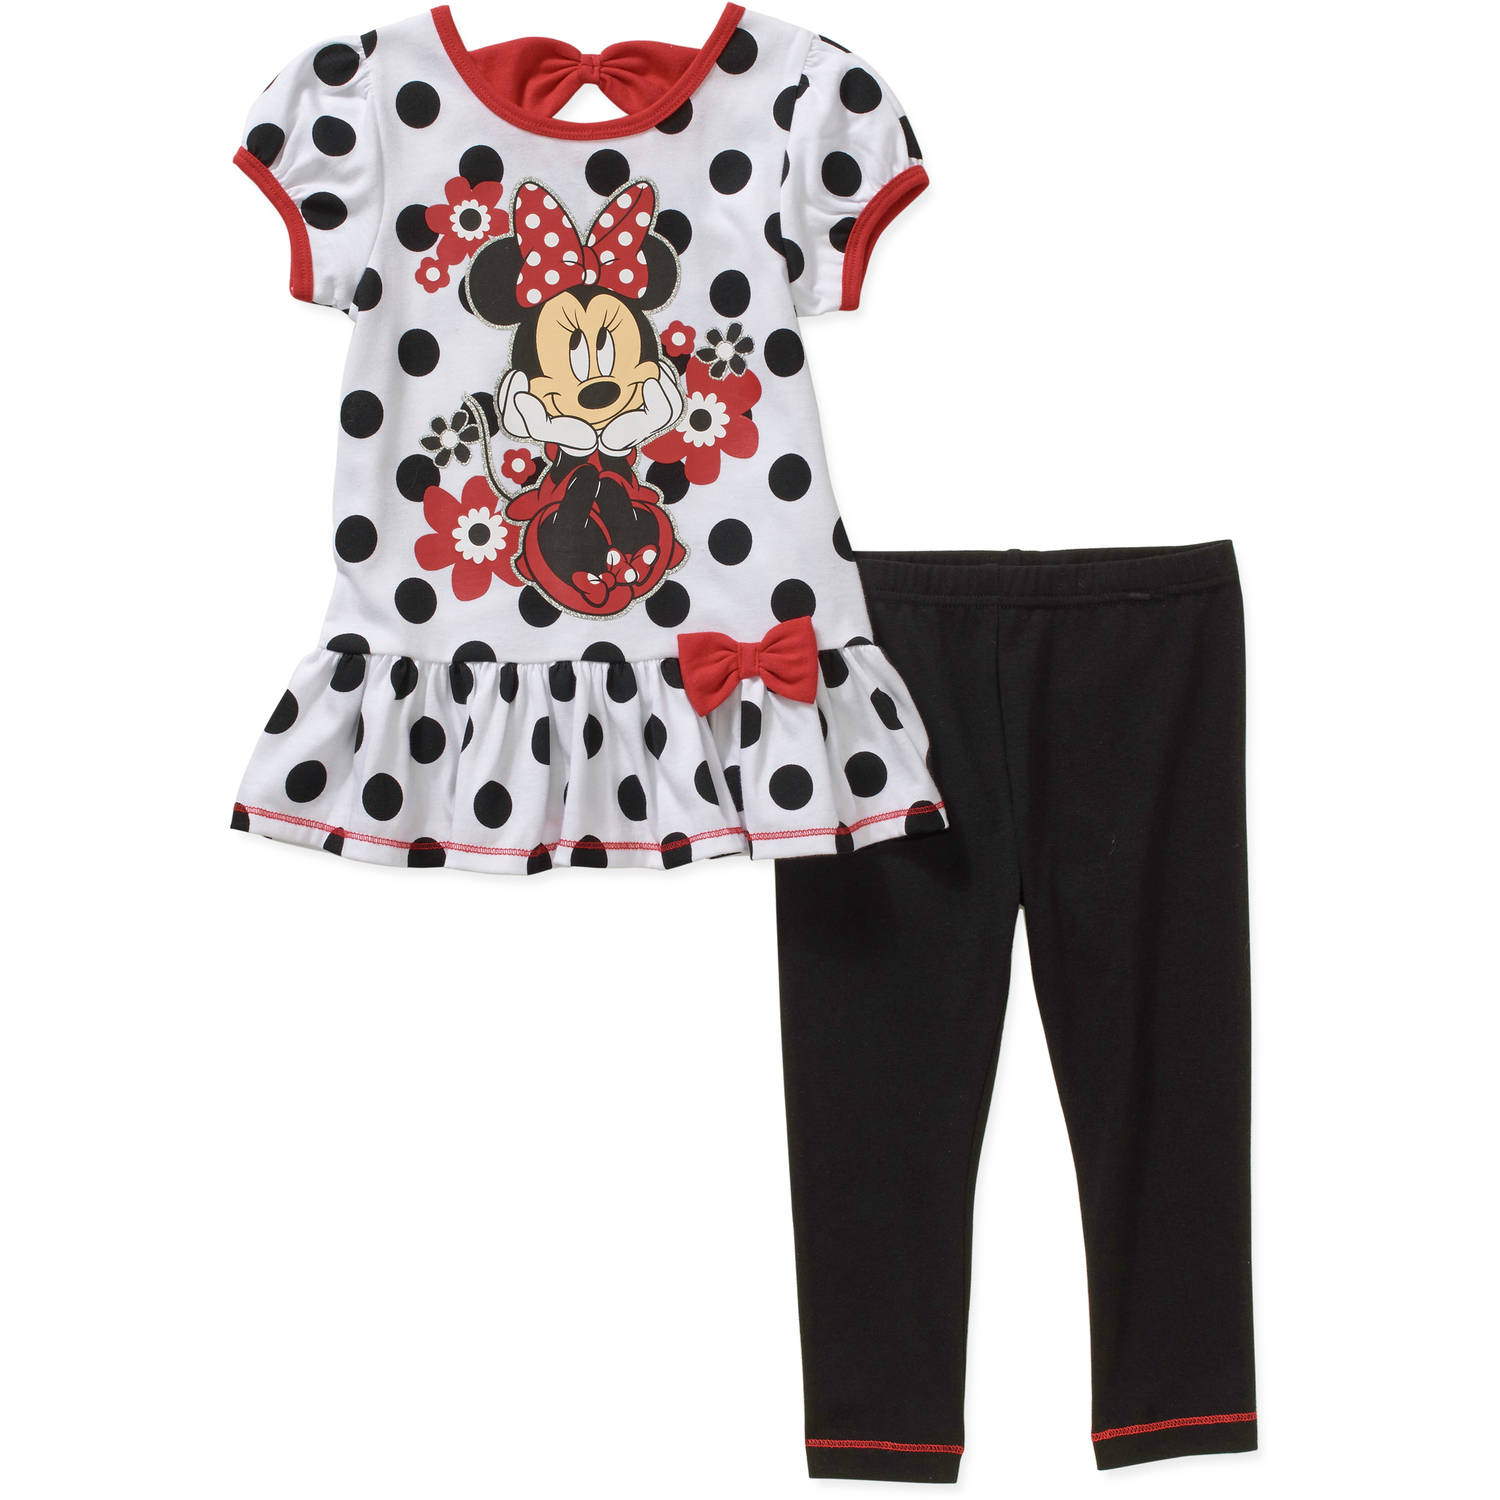 Disney Minnie Mouse Toddler Girls' Peplum Tunic and Leggings Outfit Set